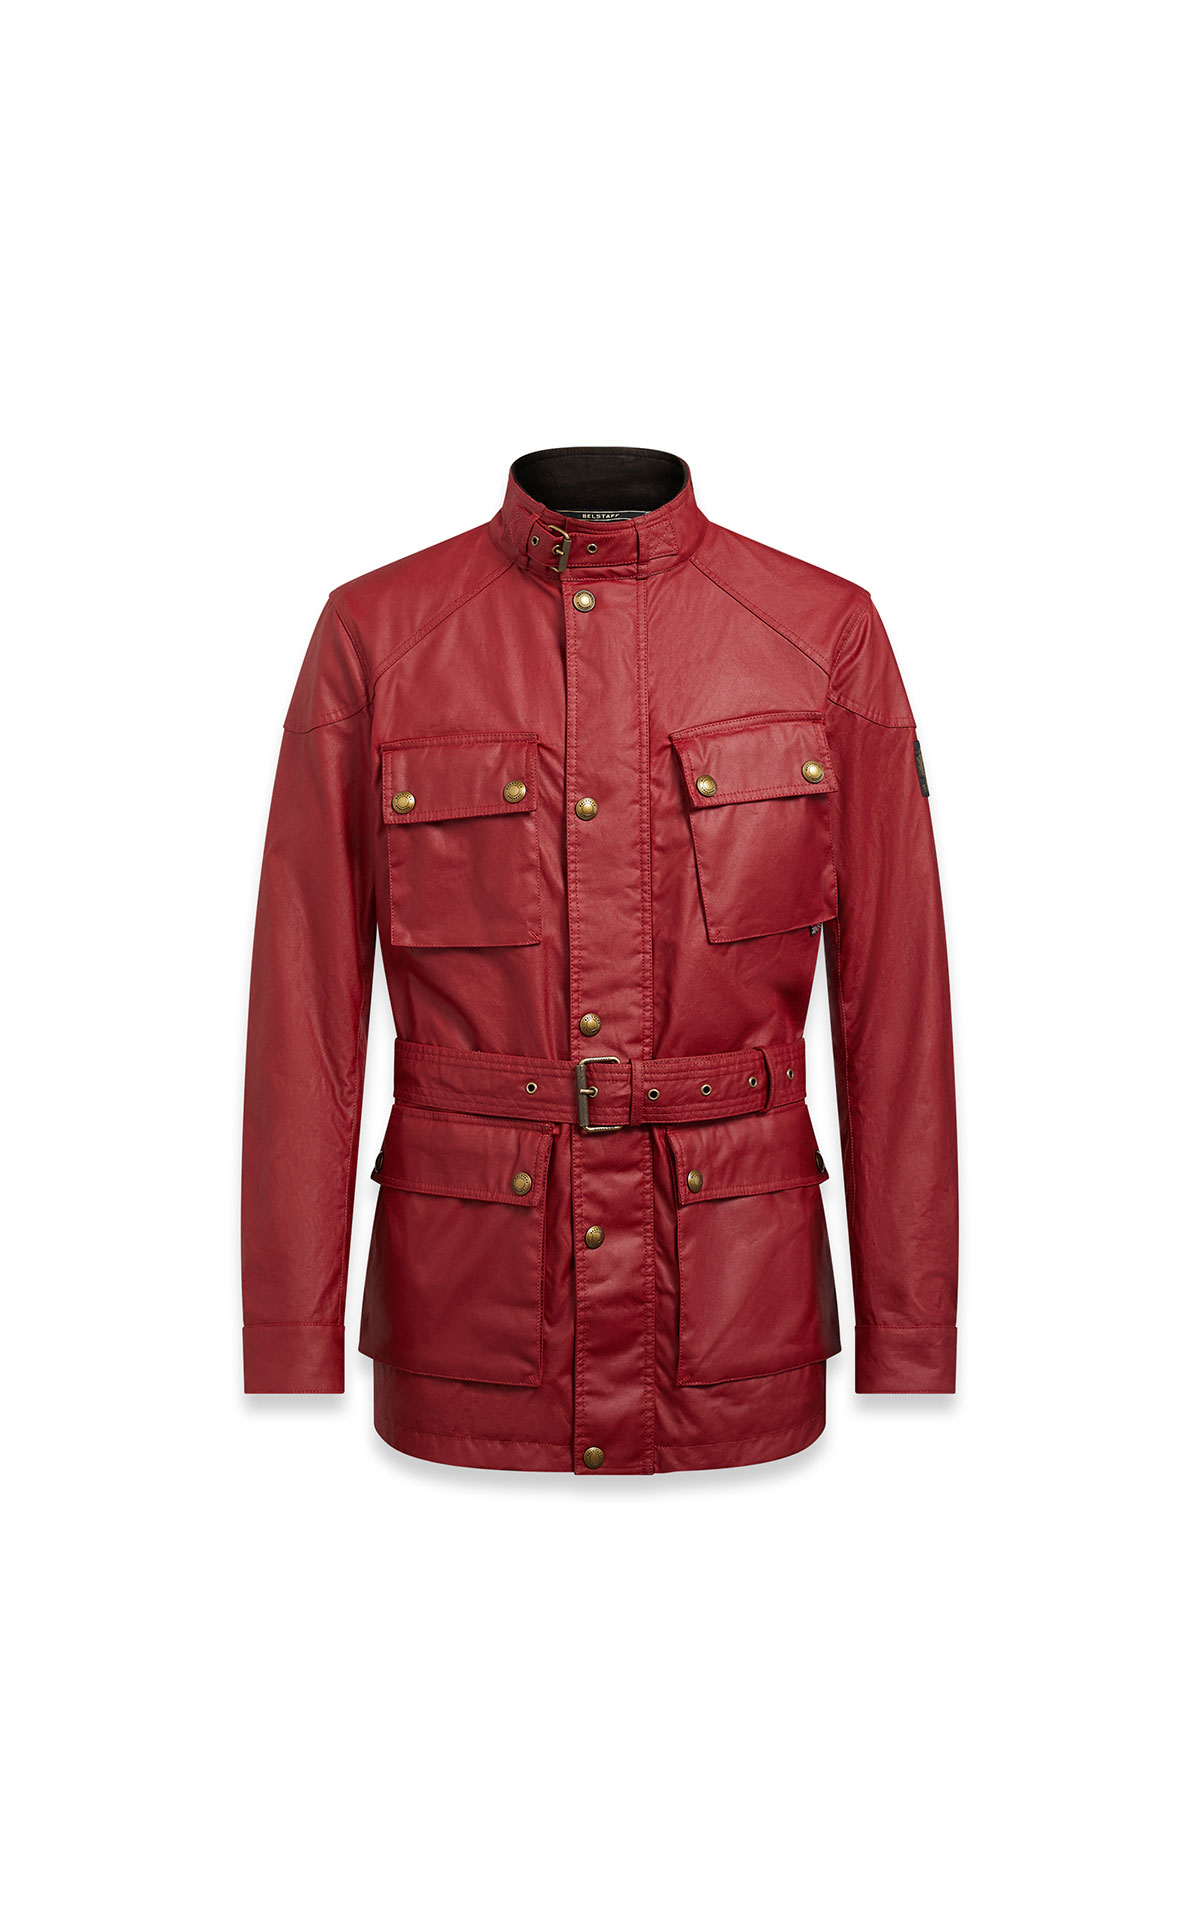 Belstaff Trialmaster jacket from Bicester Village